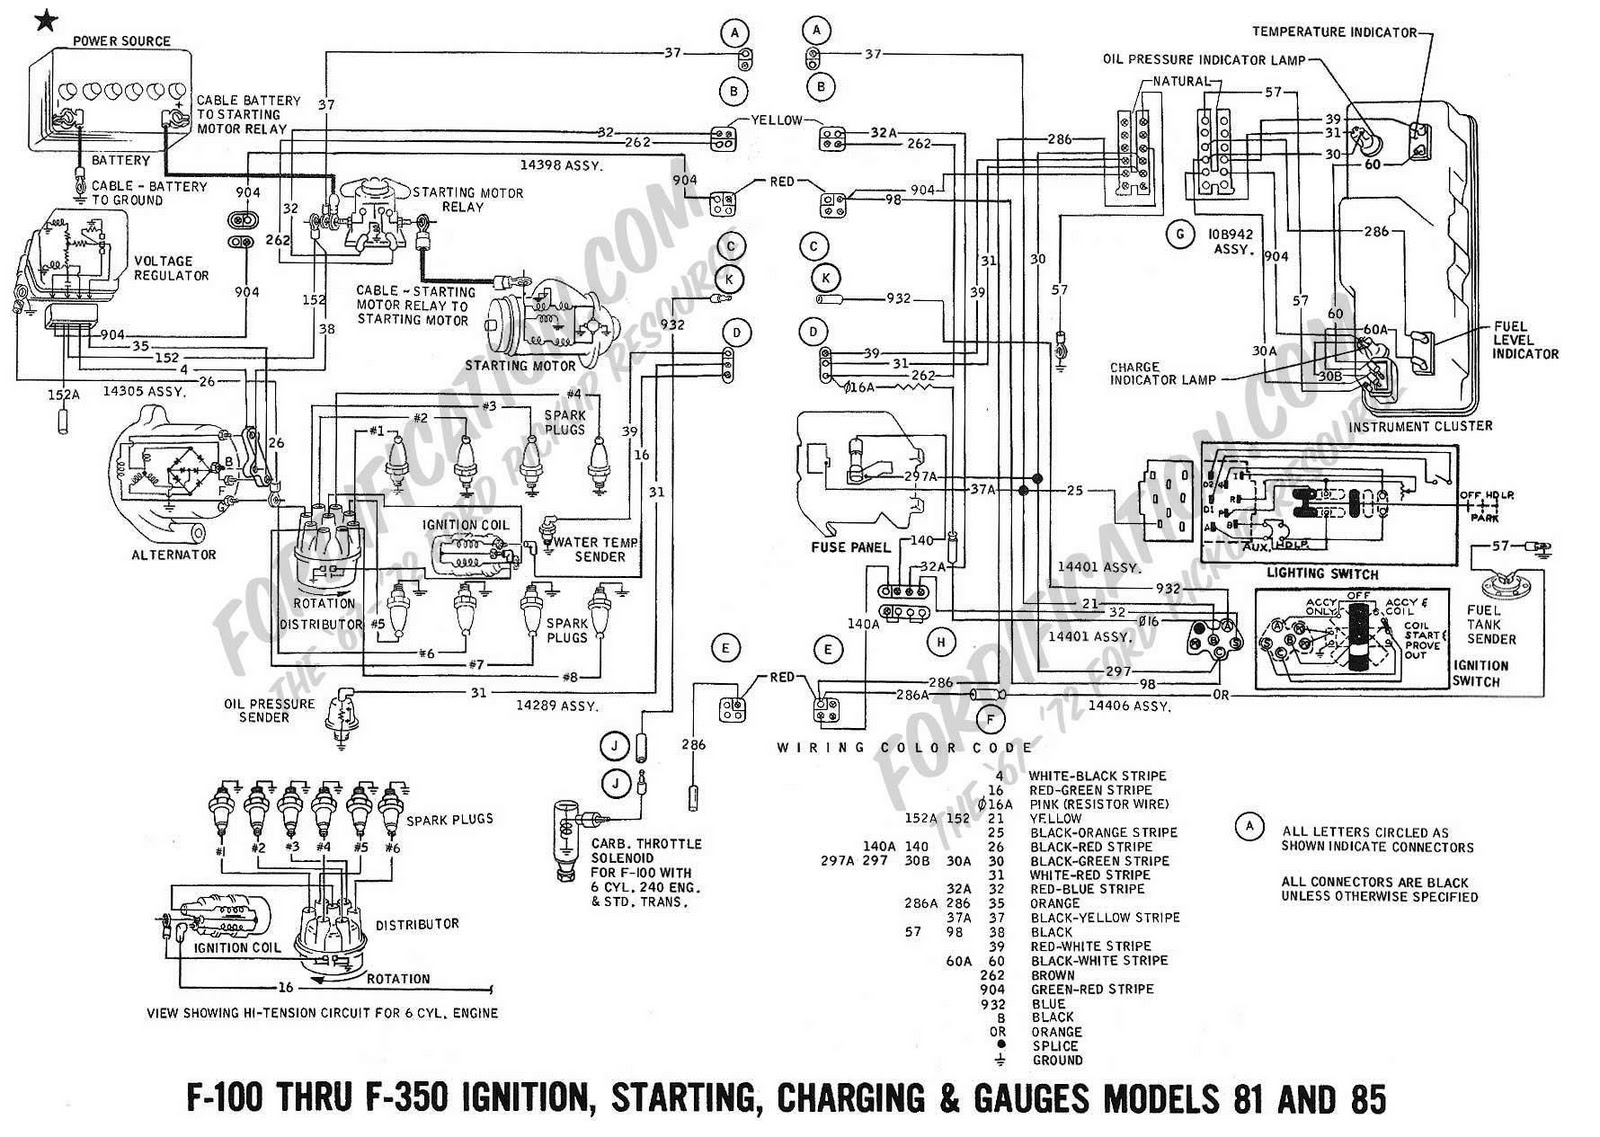 1972 ford ignition diagram wiring diagram detailed 1974 ford electronic ignition wiring diagram 1976 ford f250 [ 1600 x 1137 Pixel ]